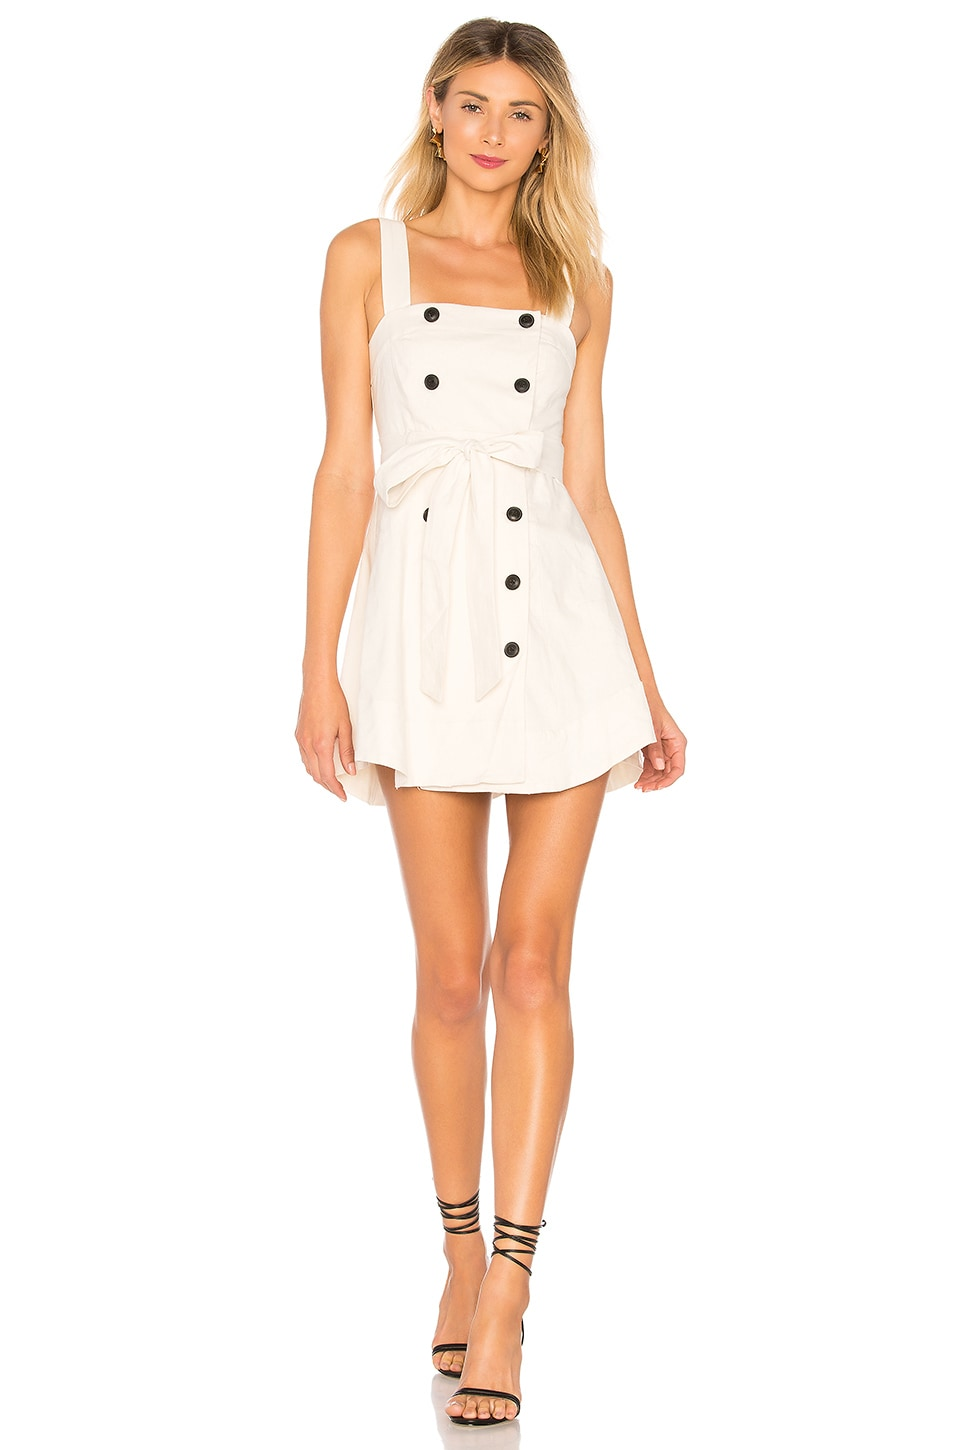 Lovers + Friends Rosanna Dress in Ivory